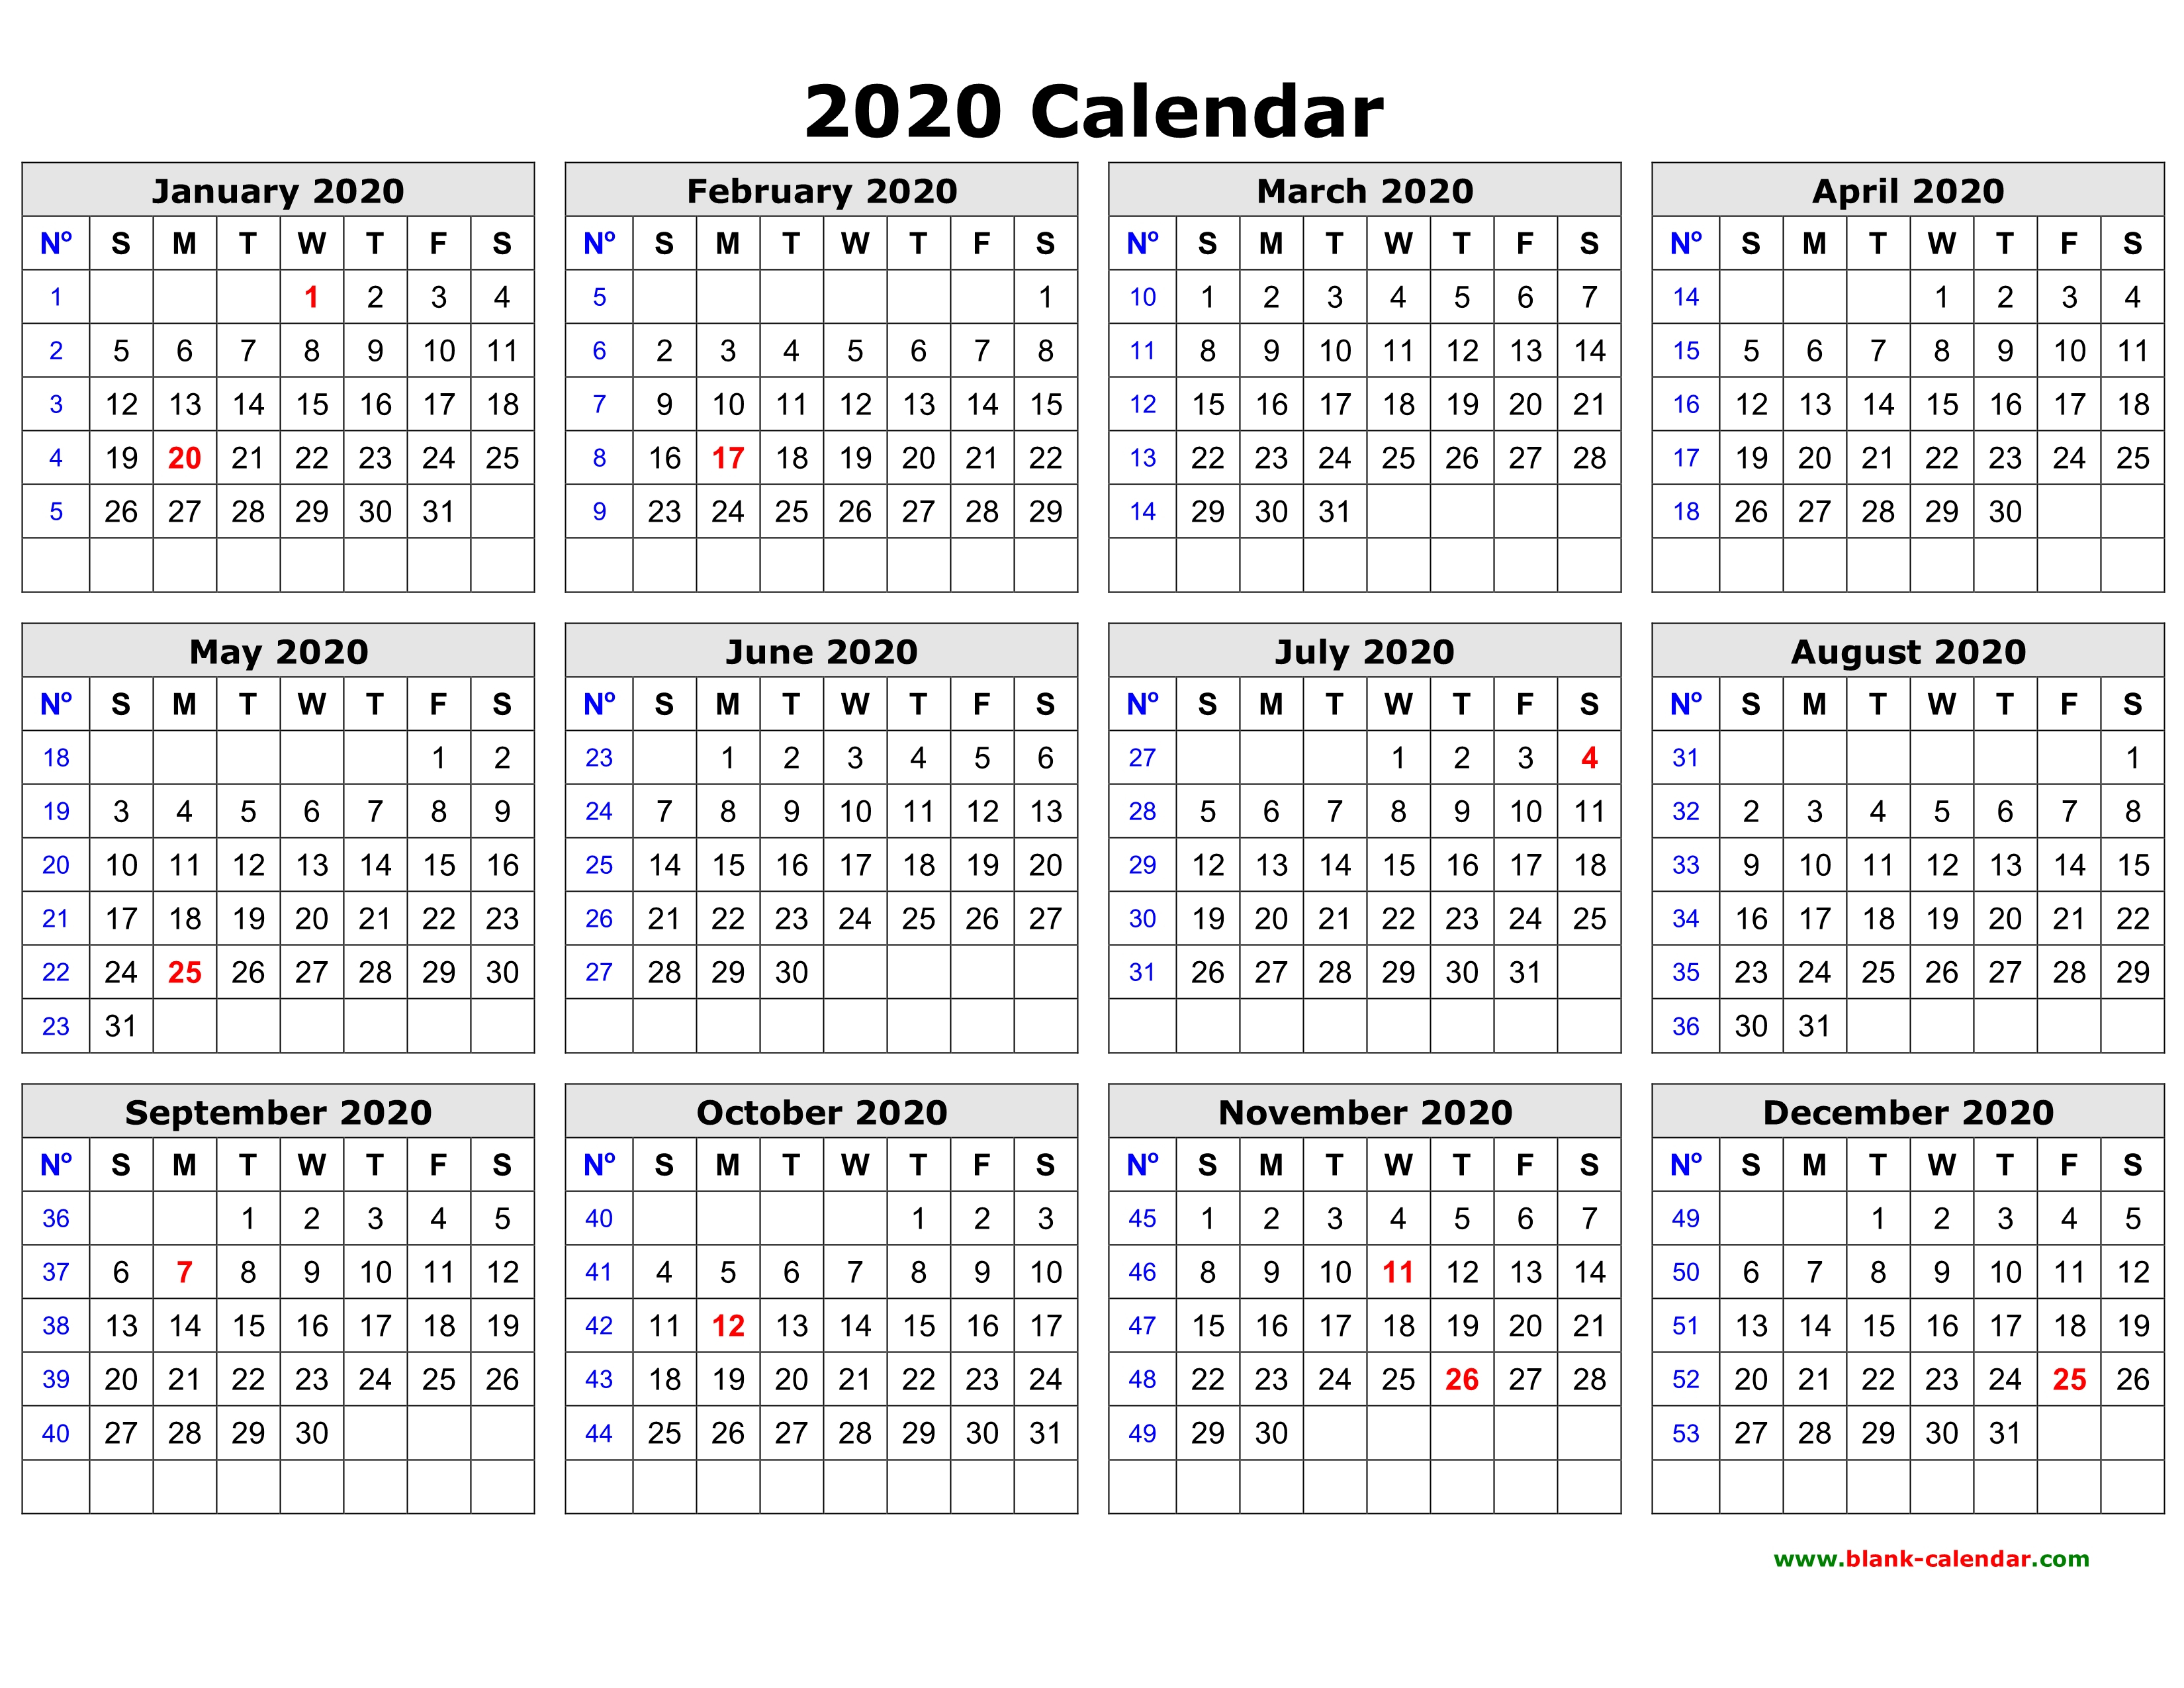 Free Download Printable Calendar 2020 In One Page, Clean Design. regarding Free Calendar 2020 Dont Have To Download